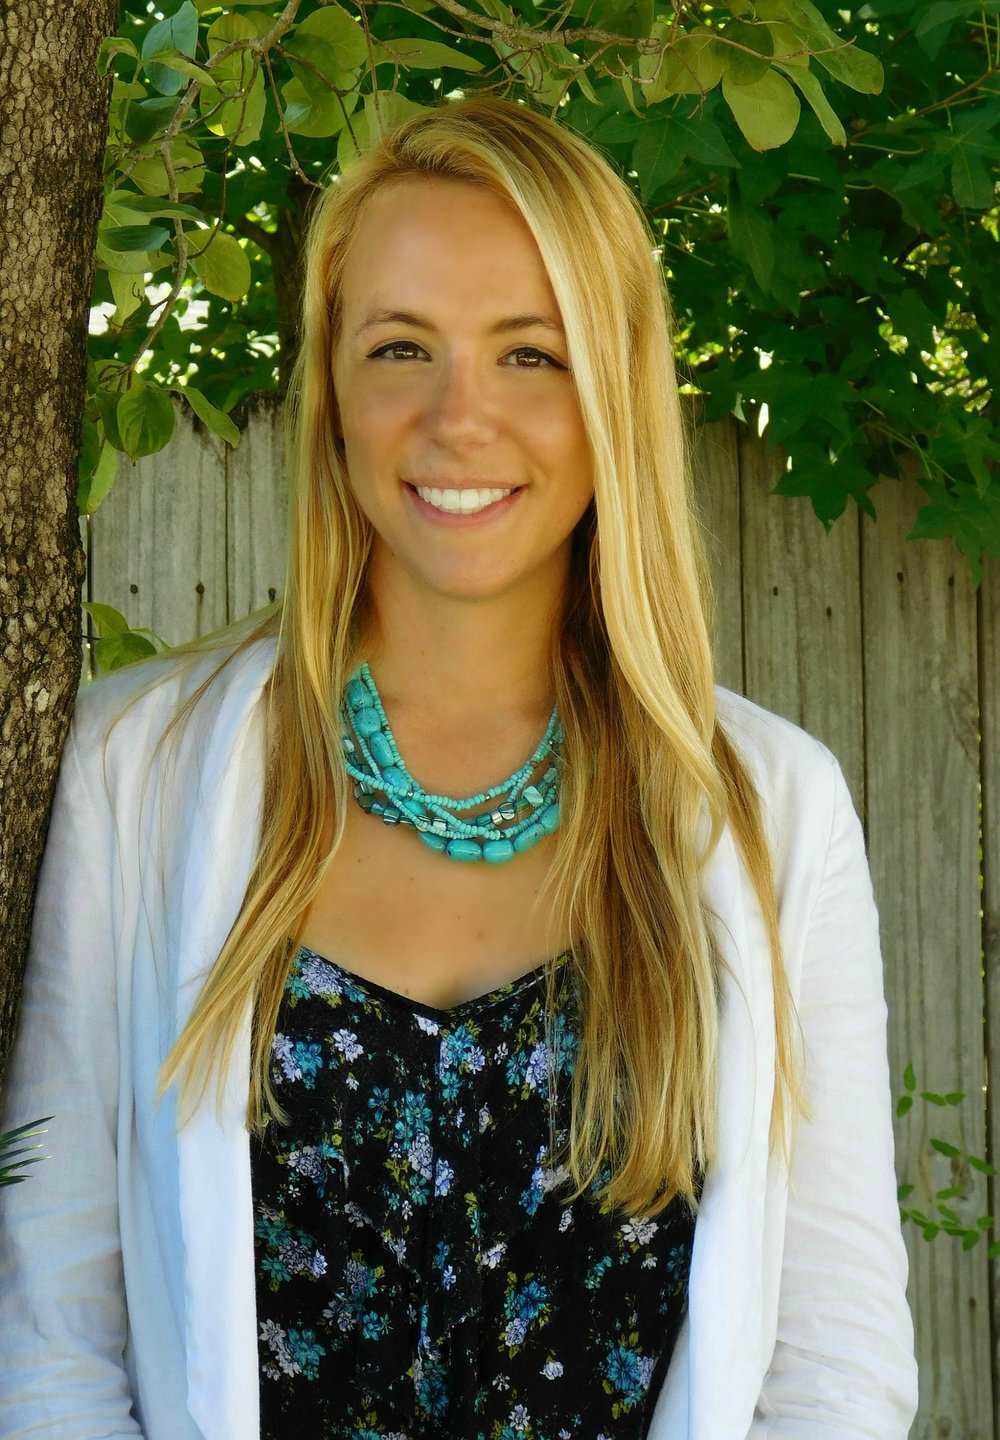 Hi, I am Laura Siljander! - I am the founder of Type Two Coaching (T2C).I have a Bachelor's Degree in Exercise Science and a Master's degree in Clinical Social Work.At T2C I combine both mental health modalities and yoga as an additional treatment for those suffering from type 2 diabetes.Here we will go beyond the diet and sugar levels and learn new coping strategies and reunite the mind, body, and spirit.I have had the honor to serve many diabetics, just like you who need additional assistance with their journey.